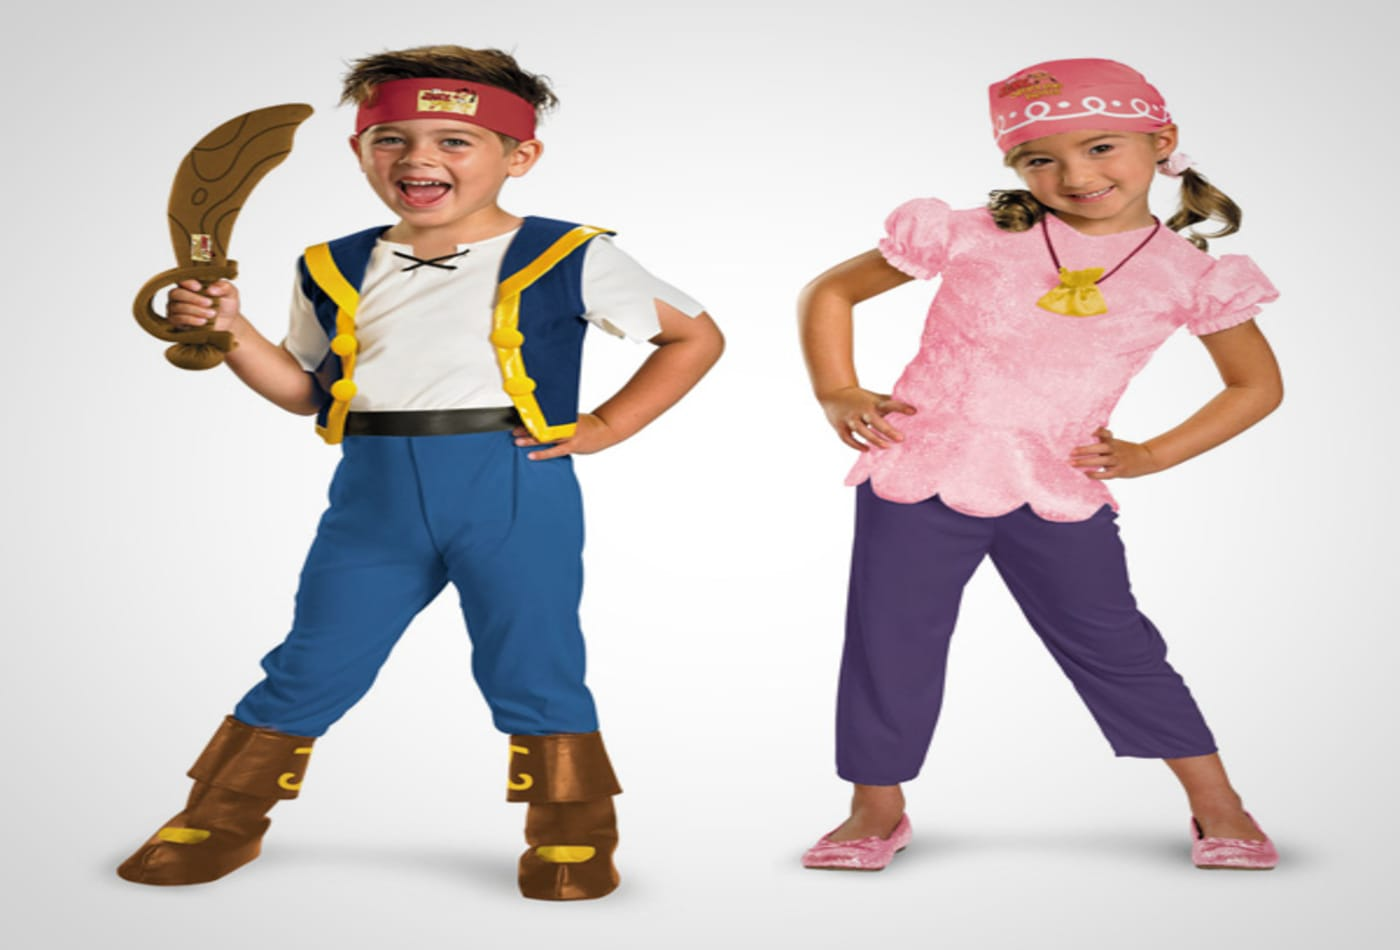 Halloween-costumes-kids-2012-jake-and-neverland.jpg